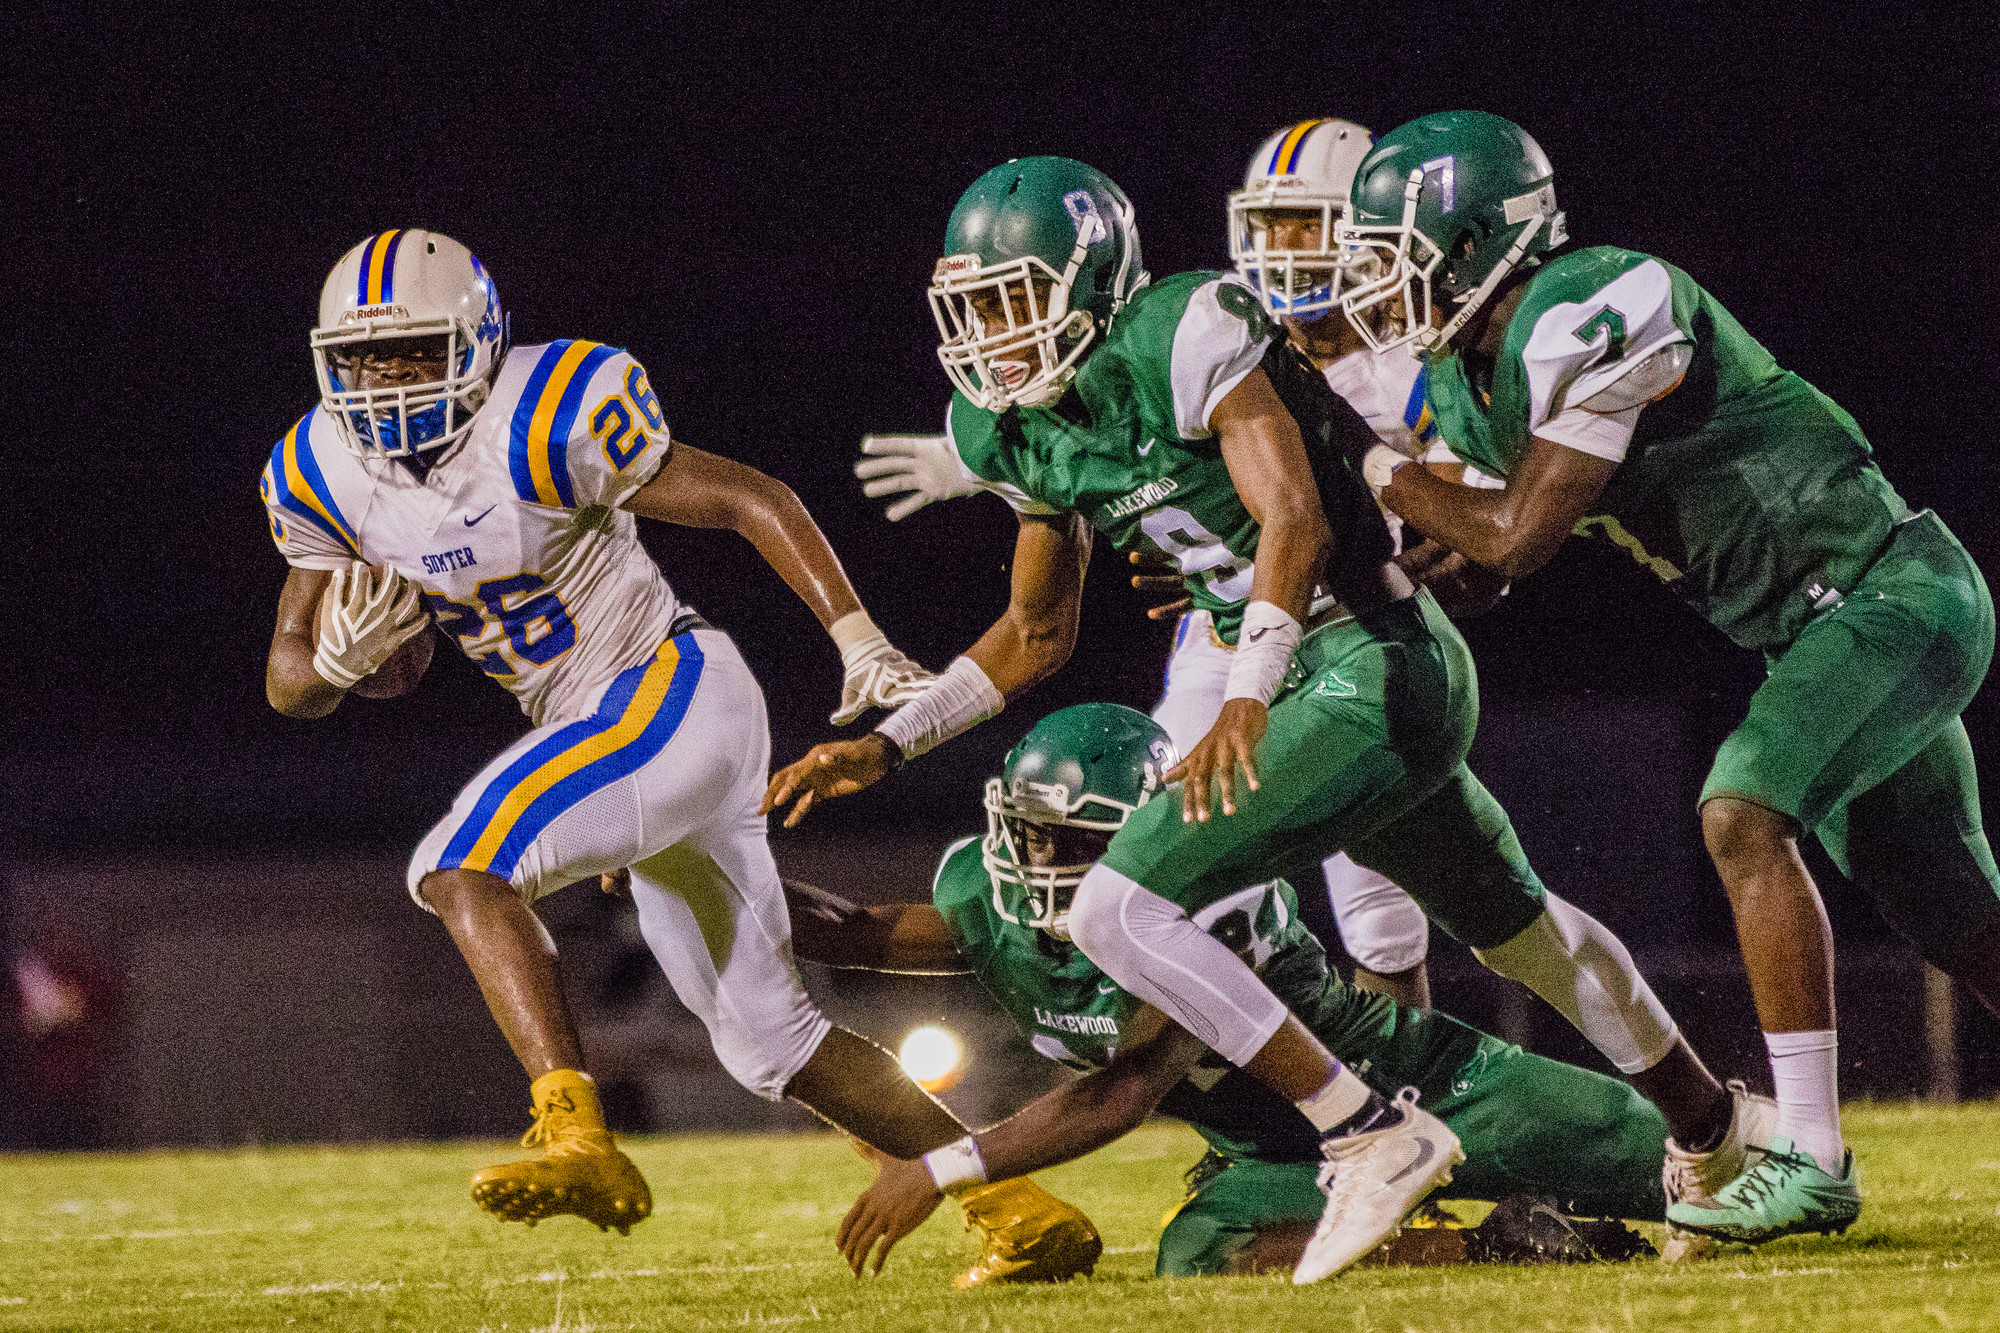 Sumter running back Jonathan Henry evades the Lakewood defense during the Gamecocks' 49-7 victory over their district rivals on Friday at J. Frank Baker Stadium.